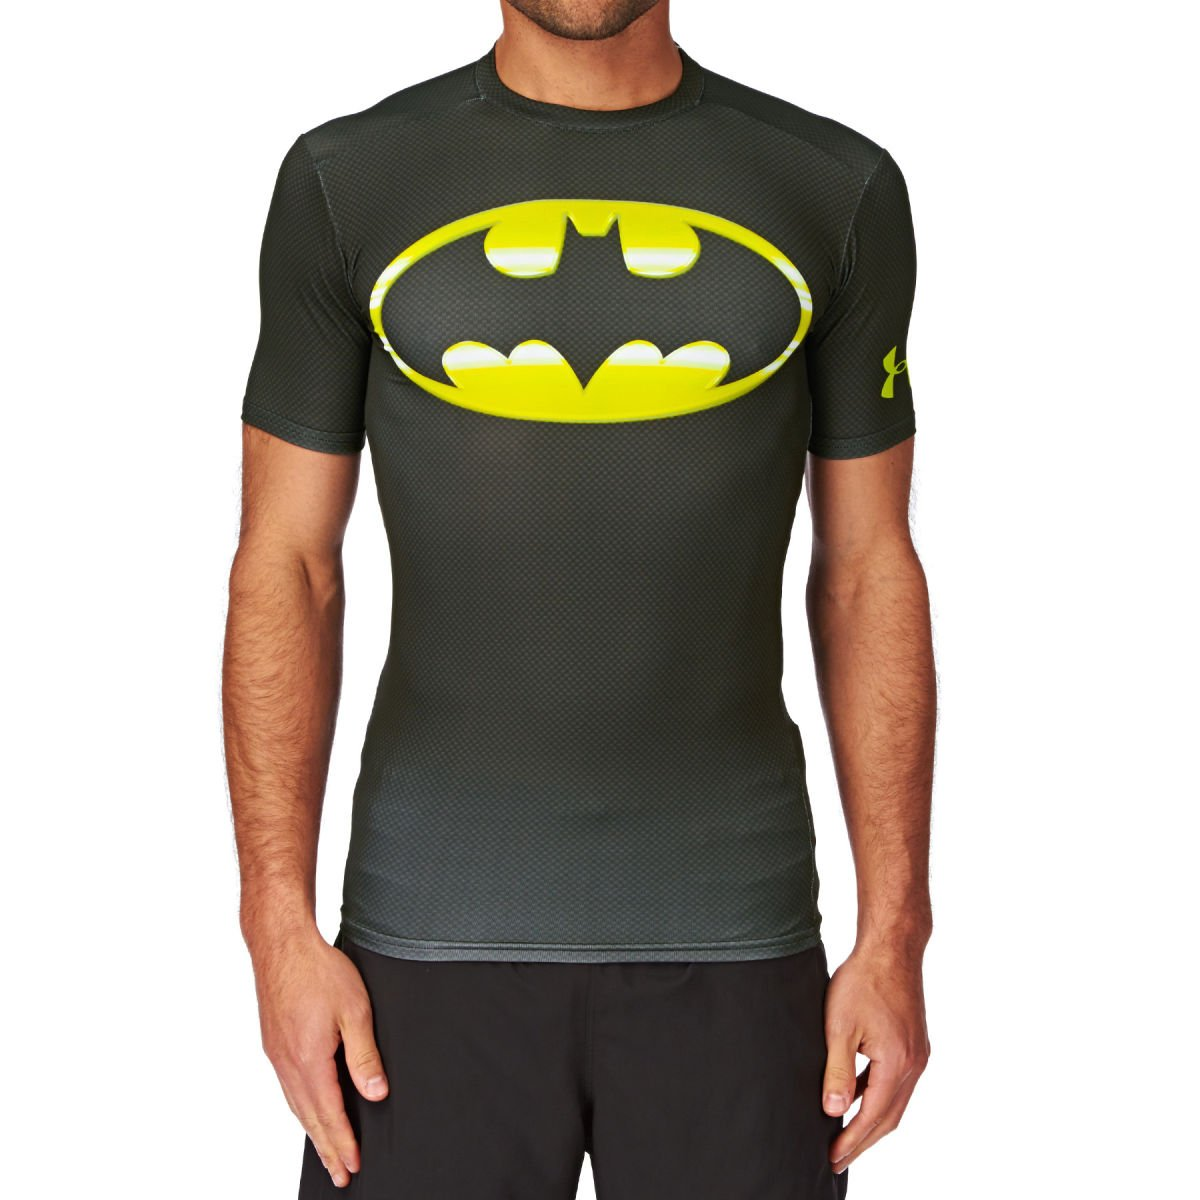 Maglia sportiva Under Armour Alter Ego Batman - Black 001 1260440-001